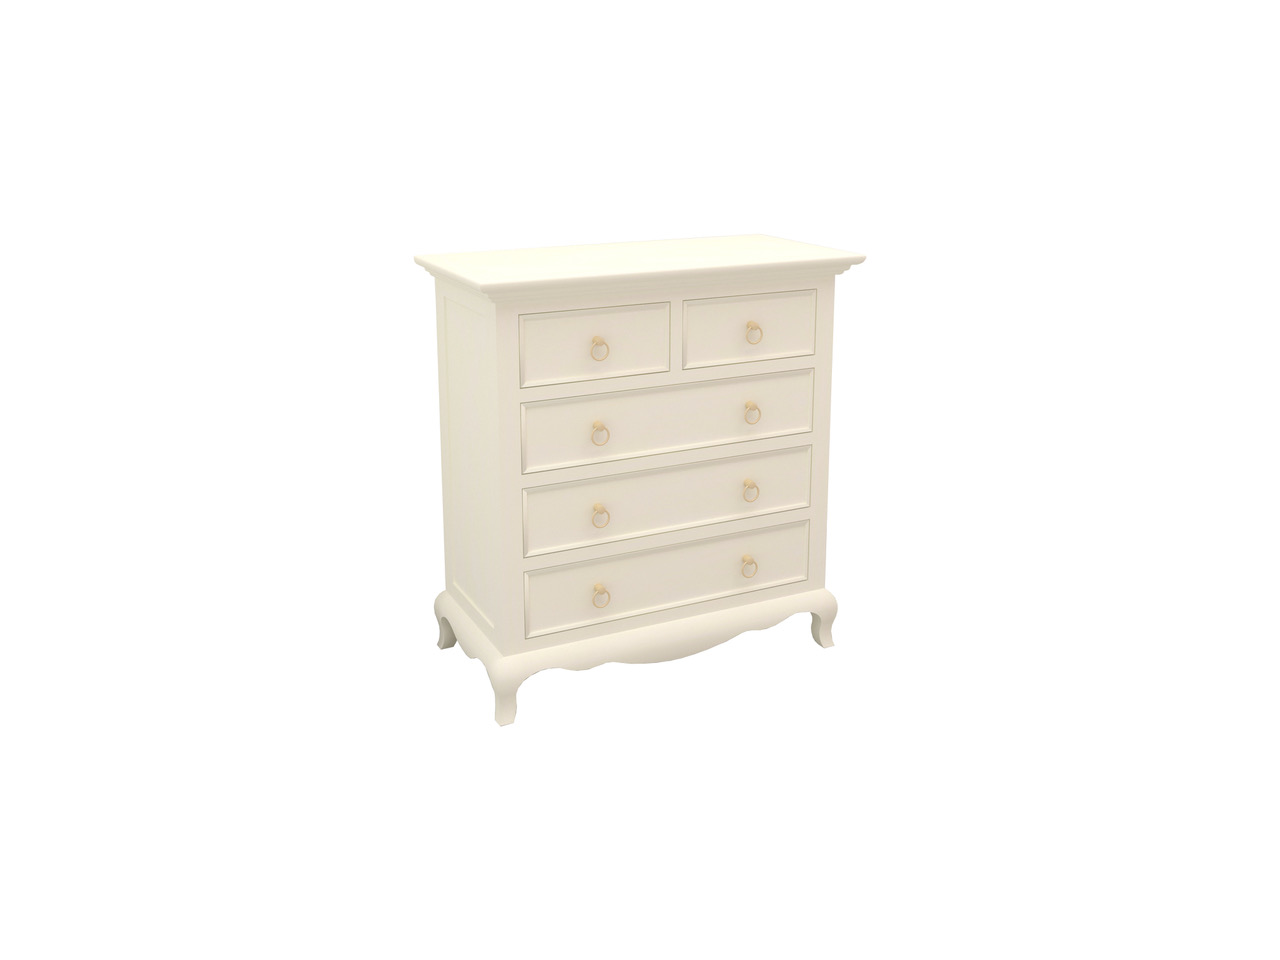 Chest drawers 2/3